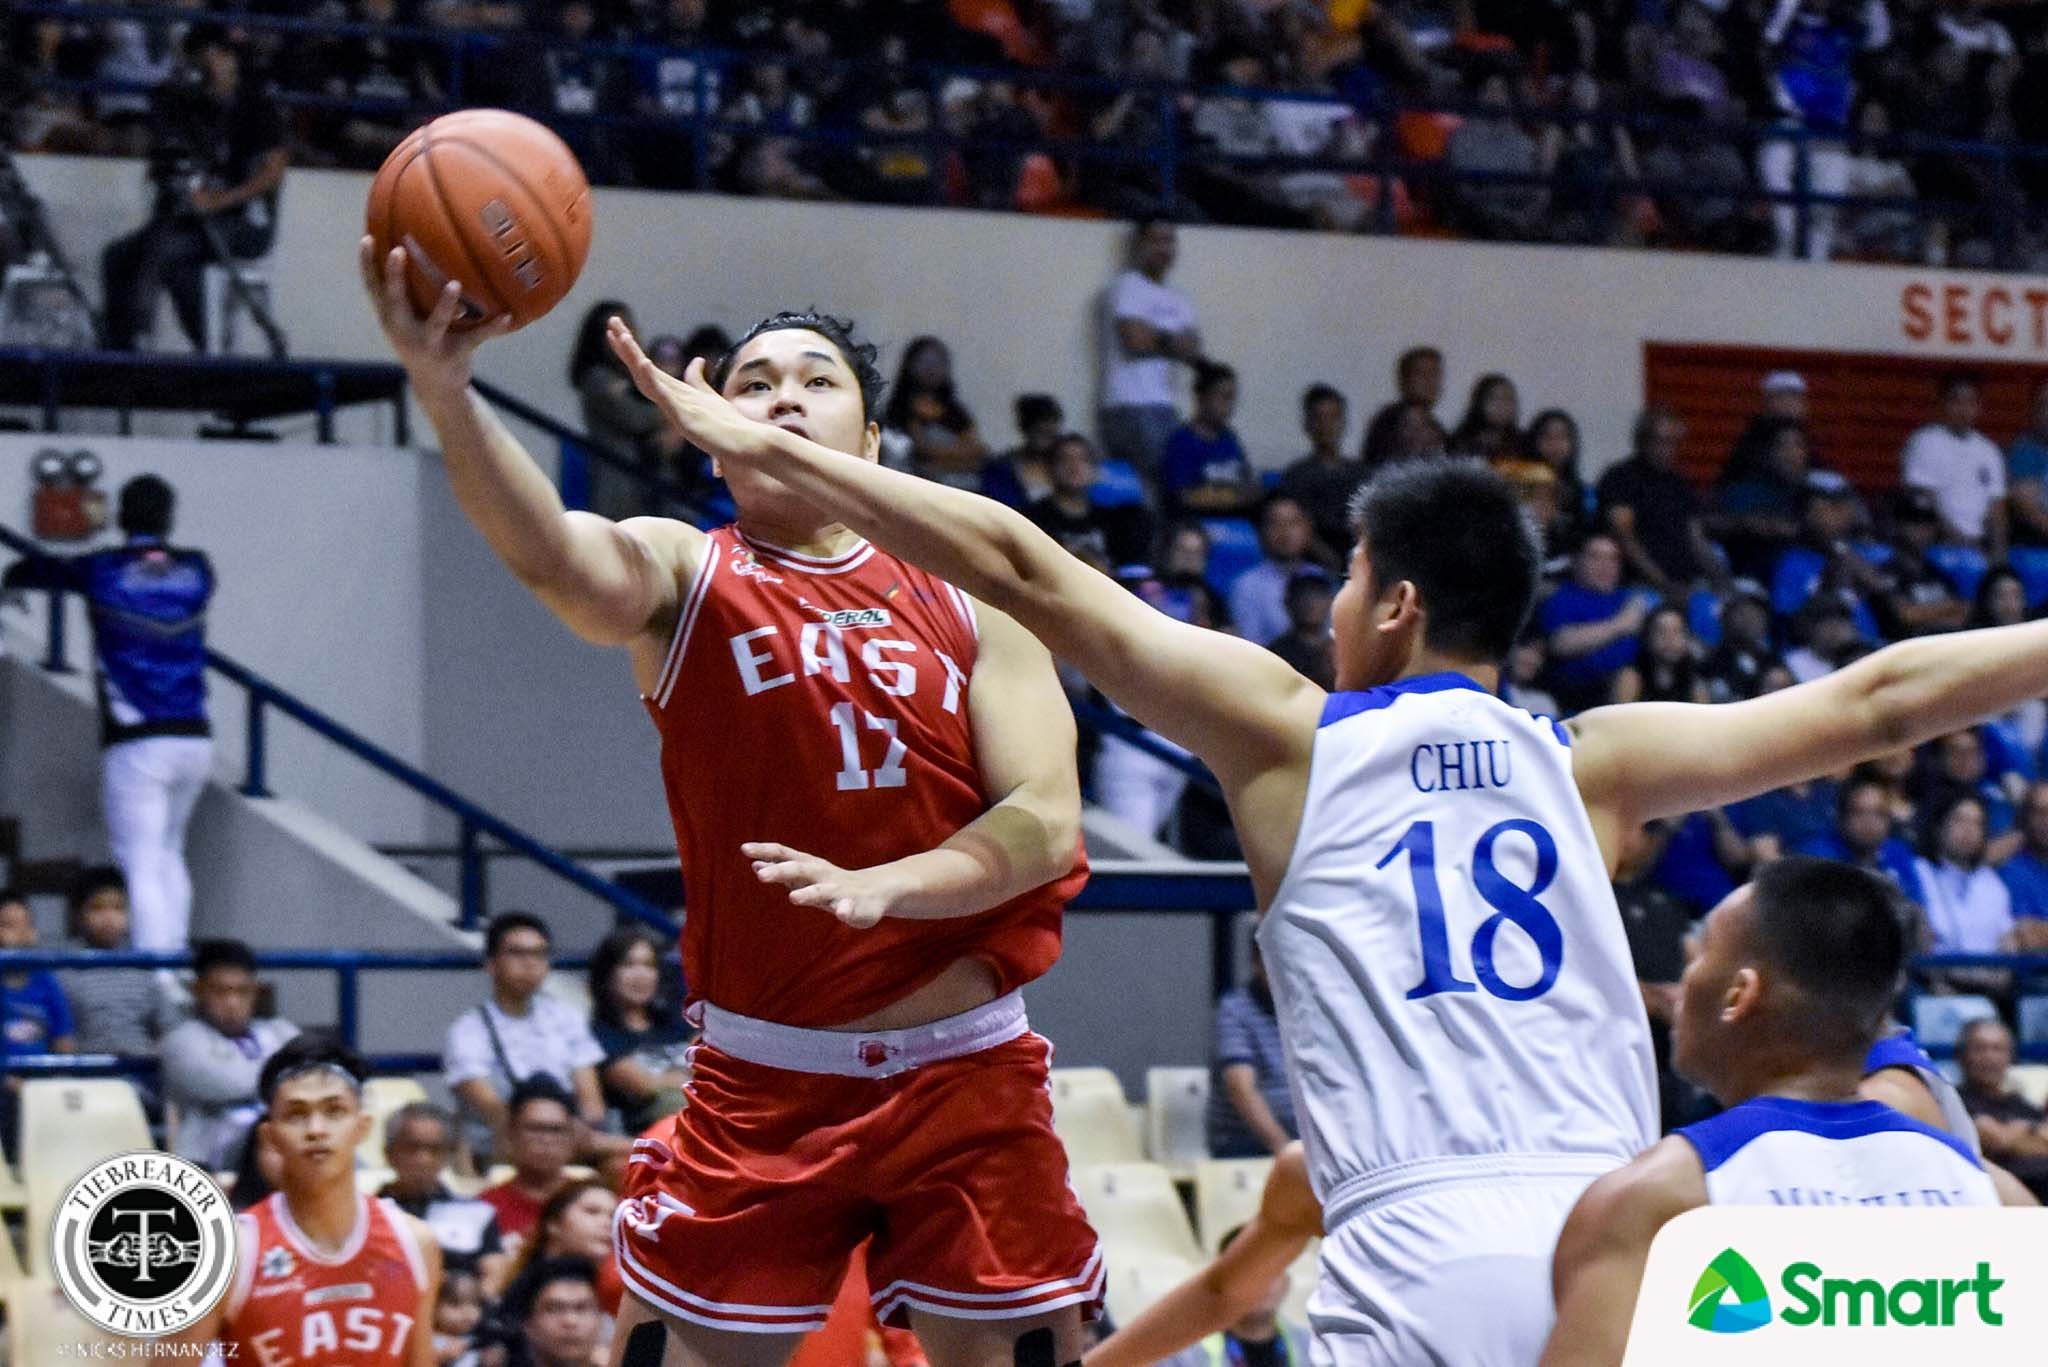 Tiebreaker Times John Apacible reflects on lessons learned since Ateneo exit Basketball News UAAP UE  UE Men's Basketball UAAP Season 82 Men's Basketball UAAP Season 82 John Apacible